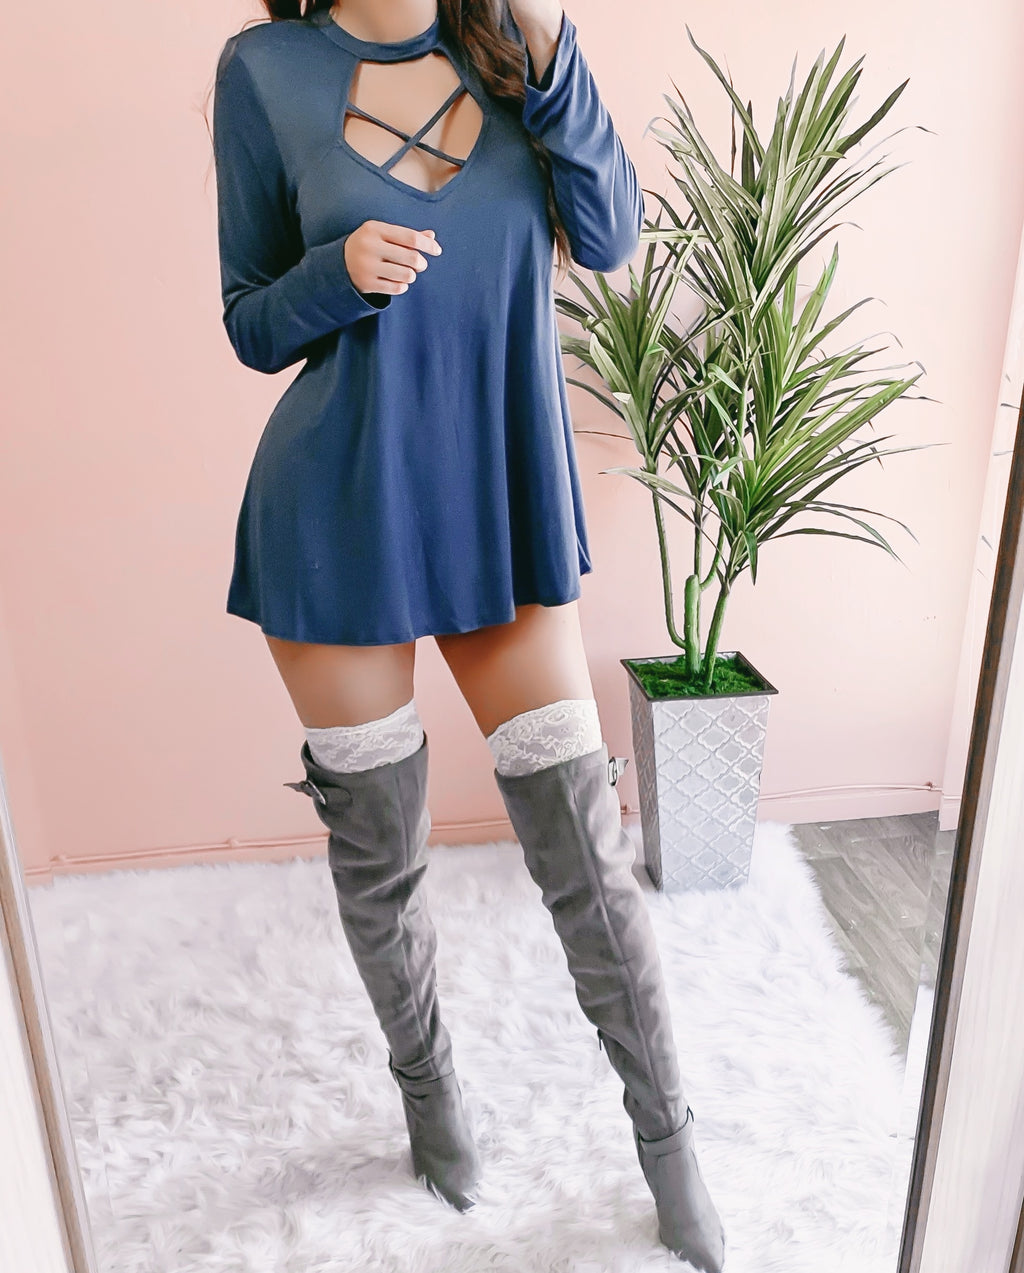 CINDY'S FAVE CRISS CROSS SWEATER DRESS (INDIGO)